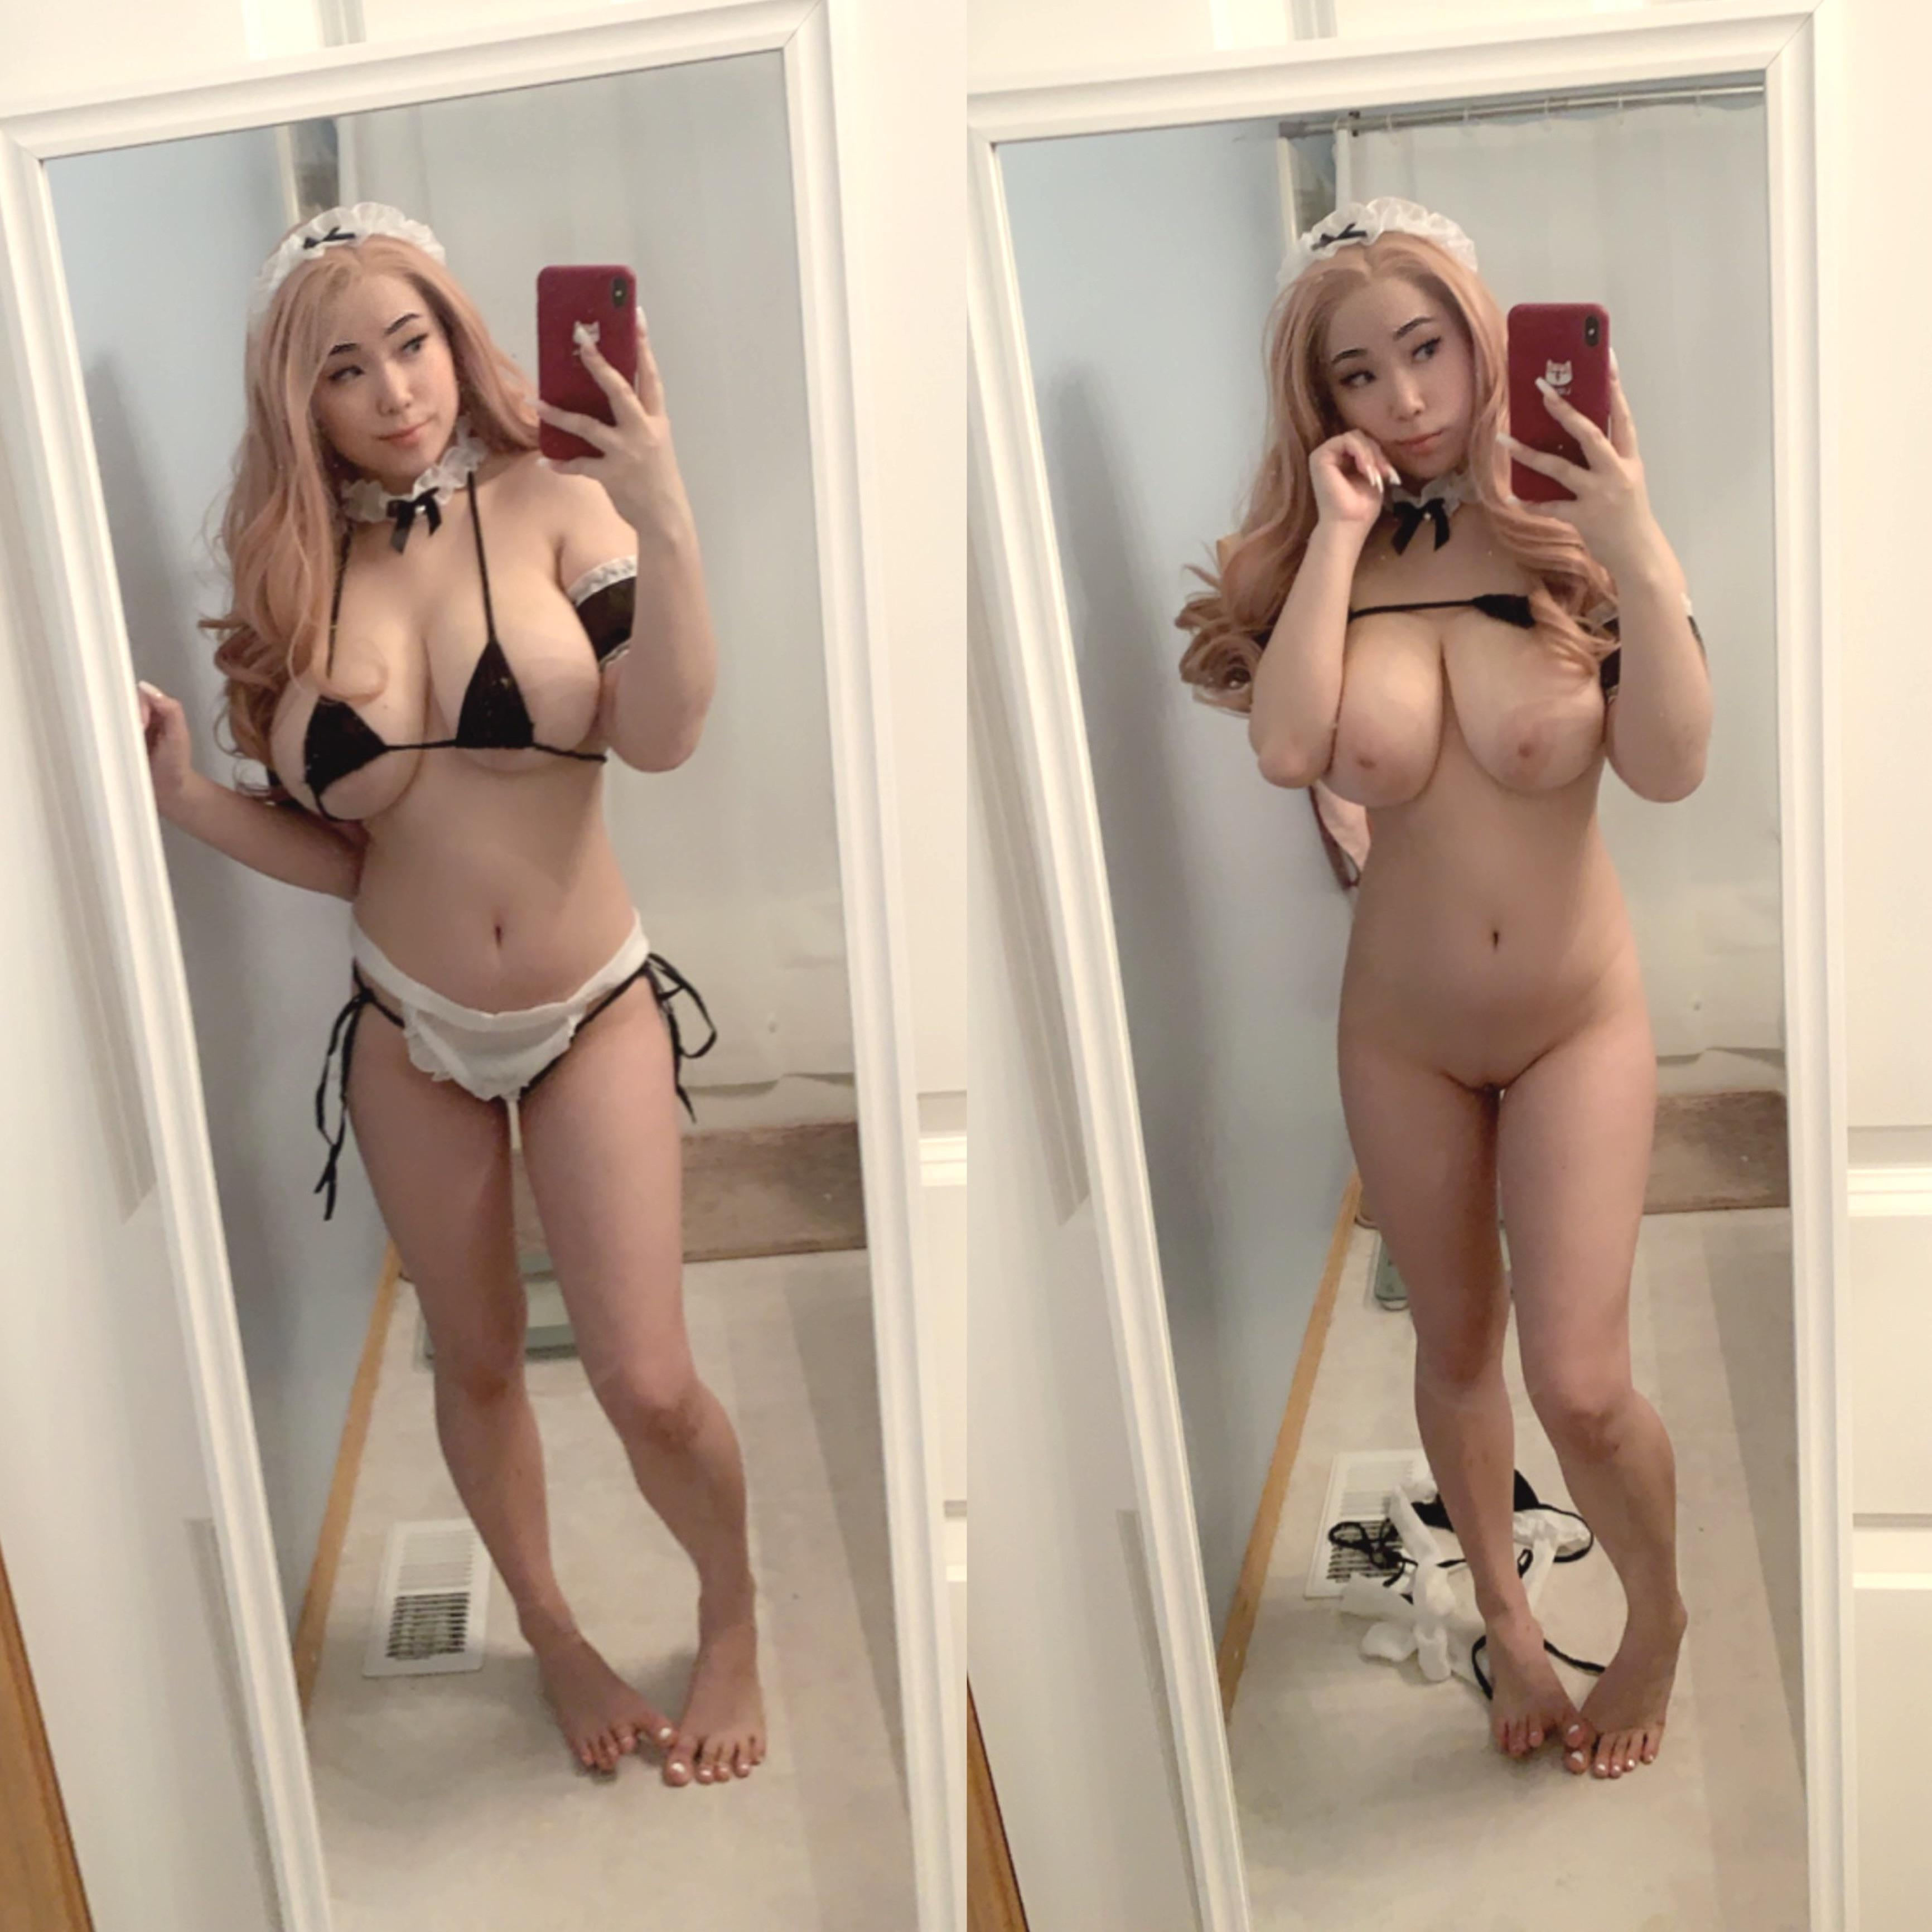 One of our naked asian pics called Let me empty and clean your balls [18 OC]